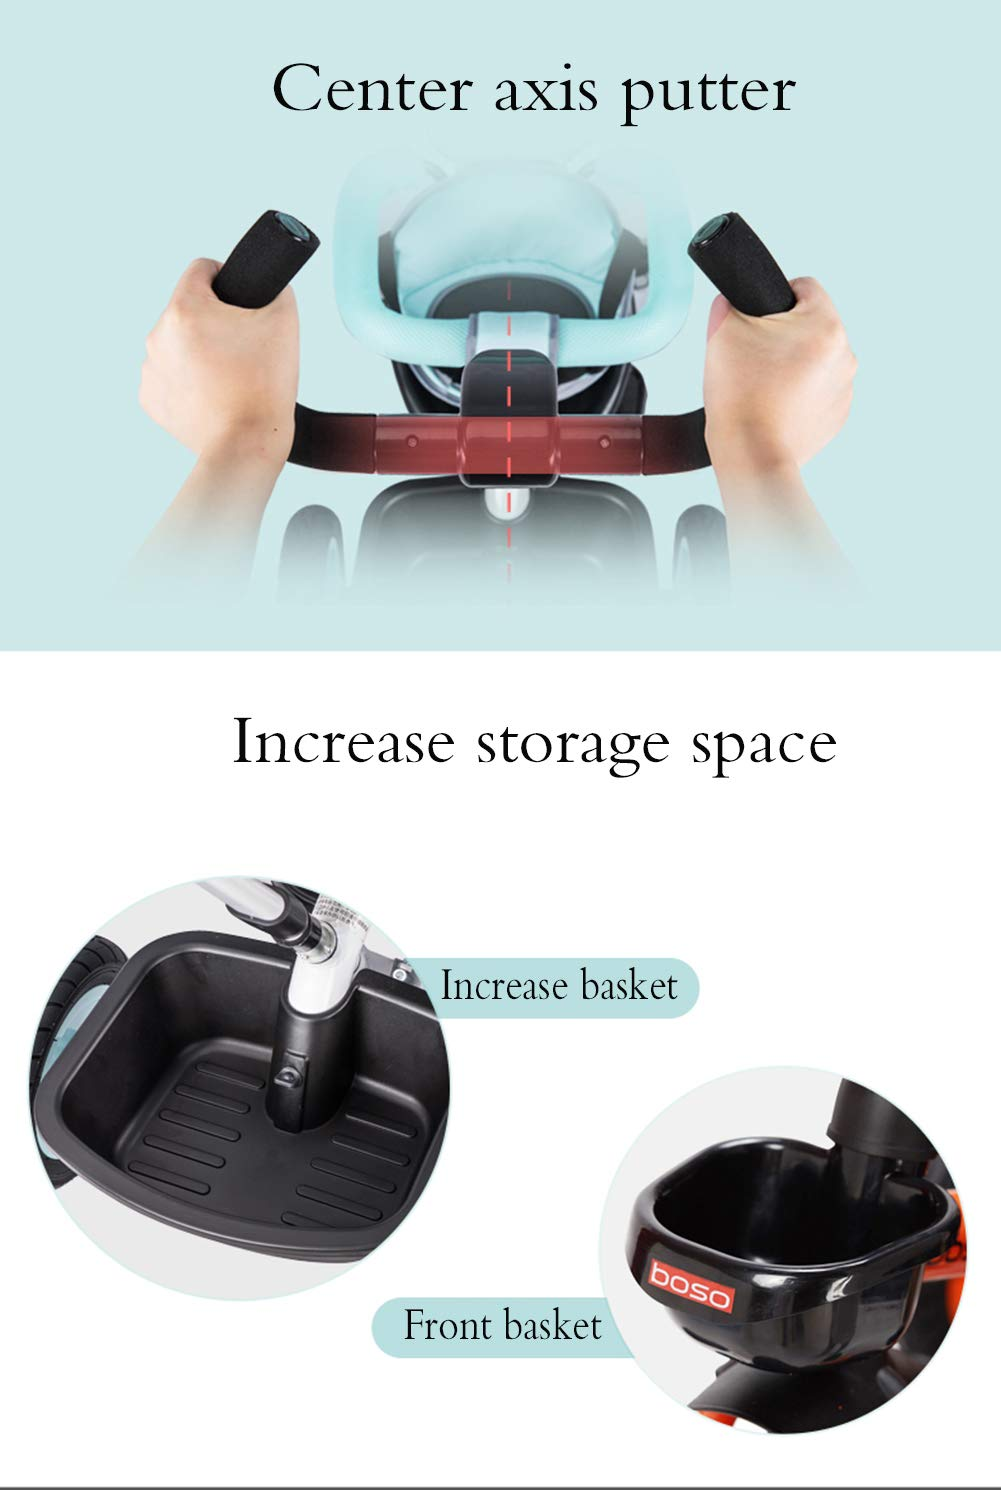 Children's Tricycle, Double-Sided Seat Stroller Adjustable Sun Visor Enlarged Storage Box Folding Pedal 3 to 6 Years Old Baby Indoor YYY ✅ 4-in-1 multi-function: two-way steering seat with push button unit. Push-pull, personalized putter multi-range adjustment putter to meet children of different heights, as the child grows, the tricycle can be adjusted to the fourth level. ✅ Durable material: This thrust tricycle is made of gem steel + environmentally friendly titanium empty wheel, with excellent strength, light resistance and anti-flaking adjustable awning. The tarpaulin material has a waterproof layer that blocks harmful ultraviolet rays, has a good sunscreen effect, and has mesh ventilation. ✅Safe design: The front wheel clutch has a two-stroke system. The steering linkage and quiet design effectively control the noise problems that may occur during implementation. Seat belt and guardrail and guardrail with double fixing pad 8